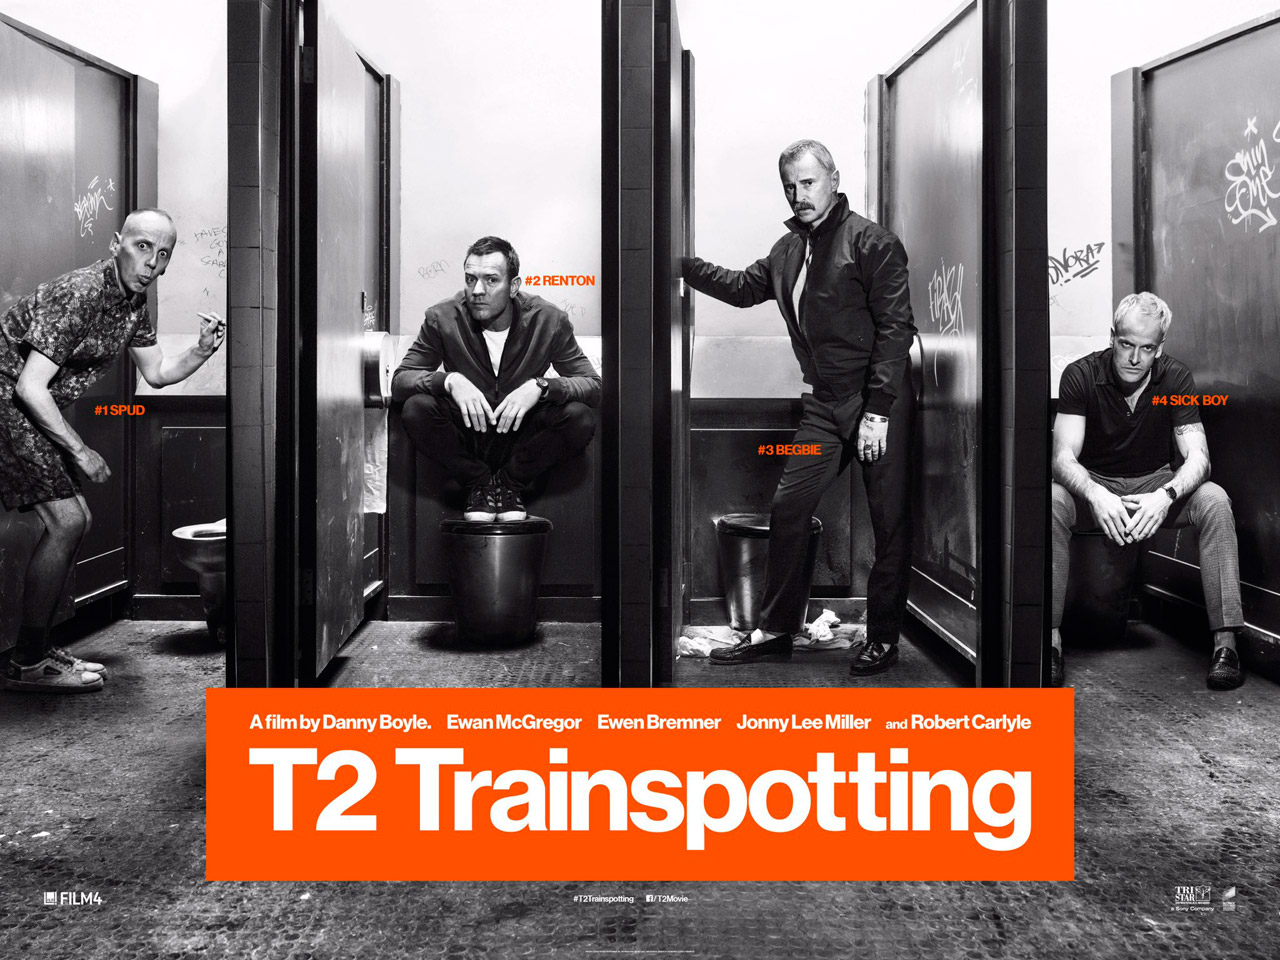 Trainspotting 2 Trailer & Poster